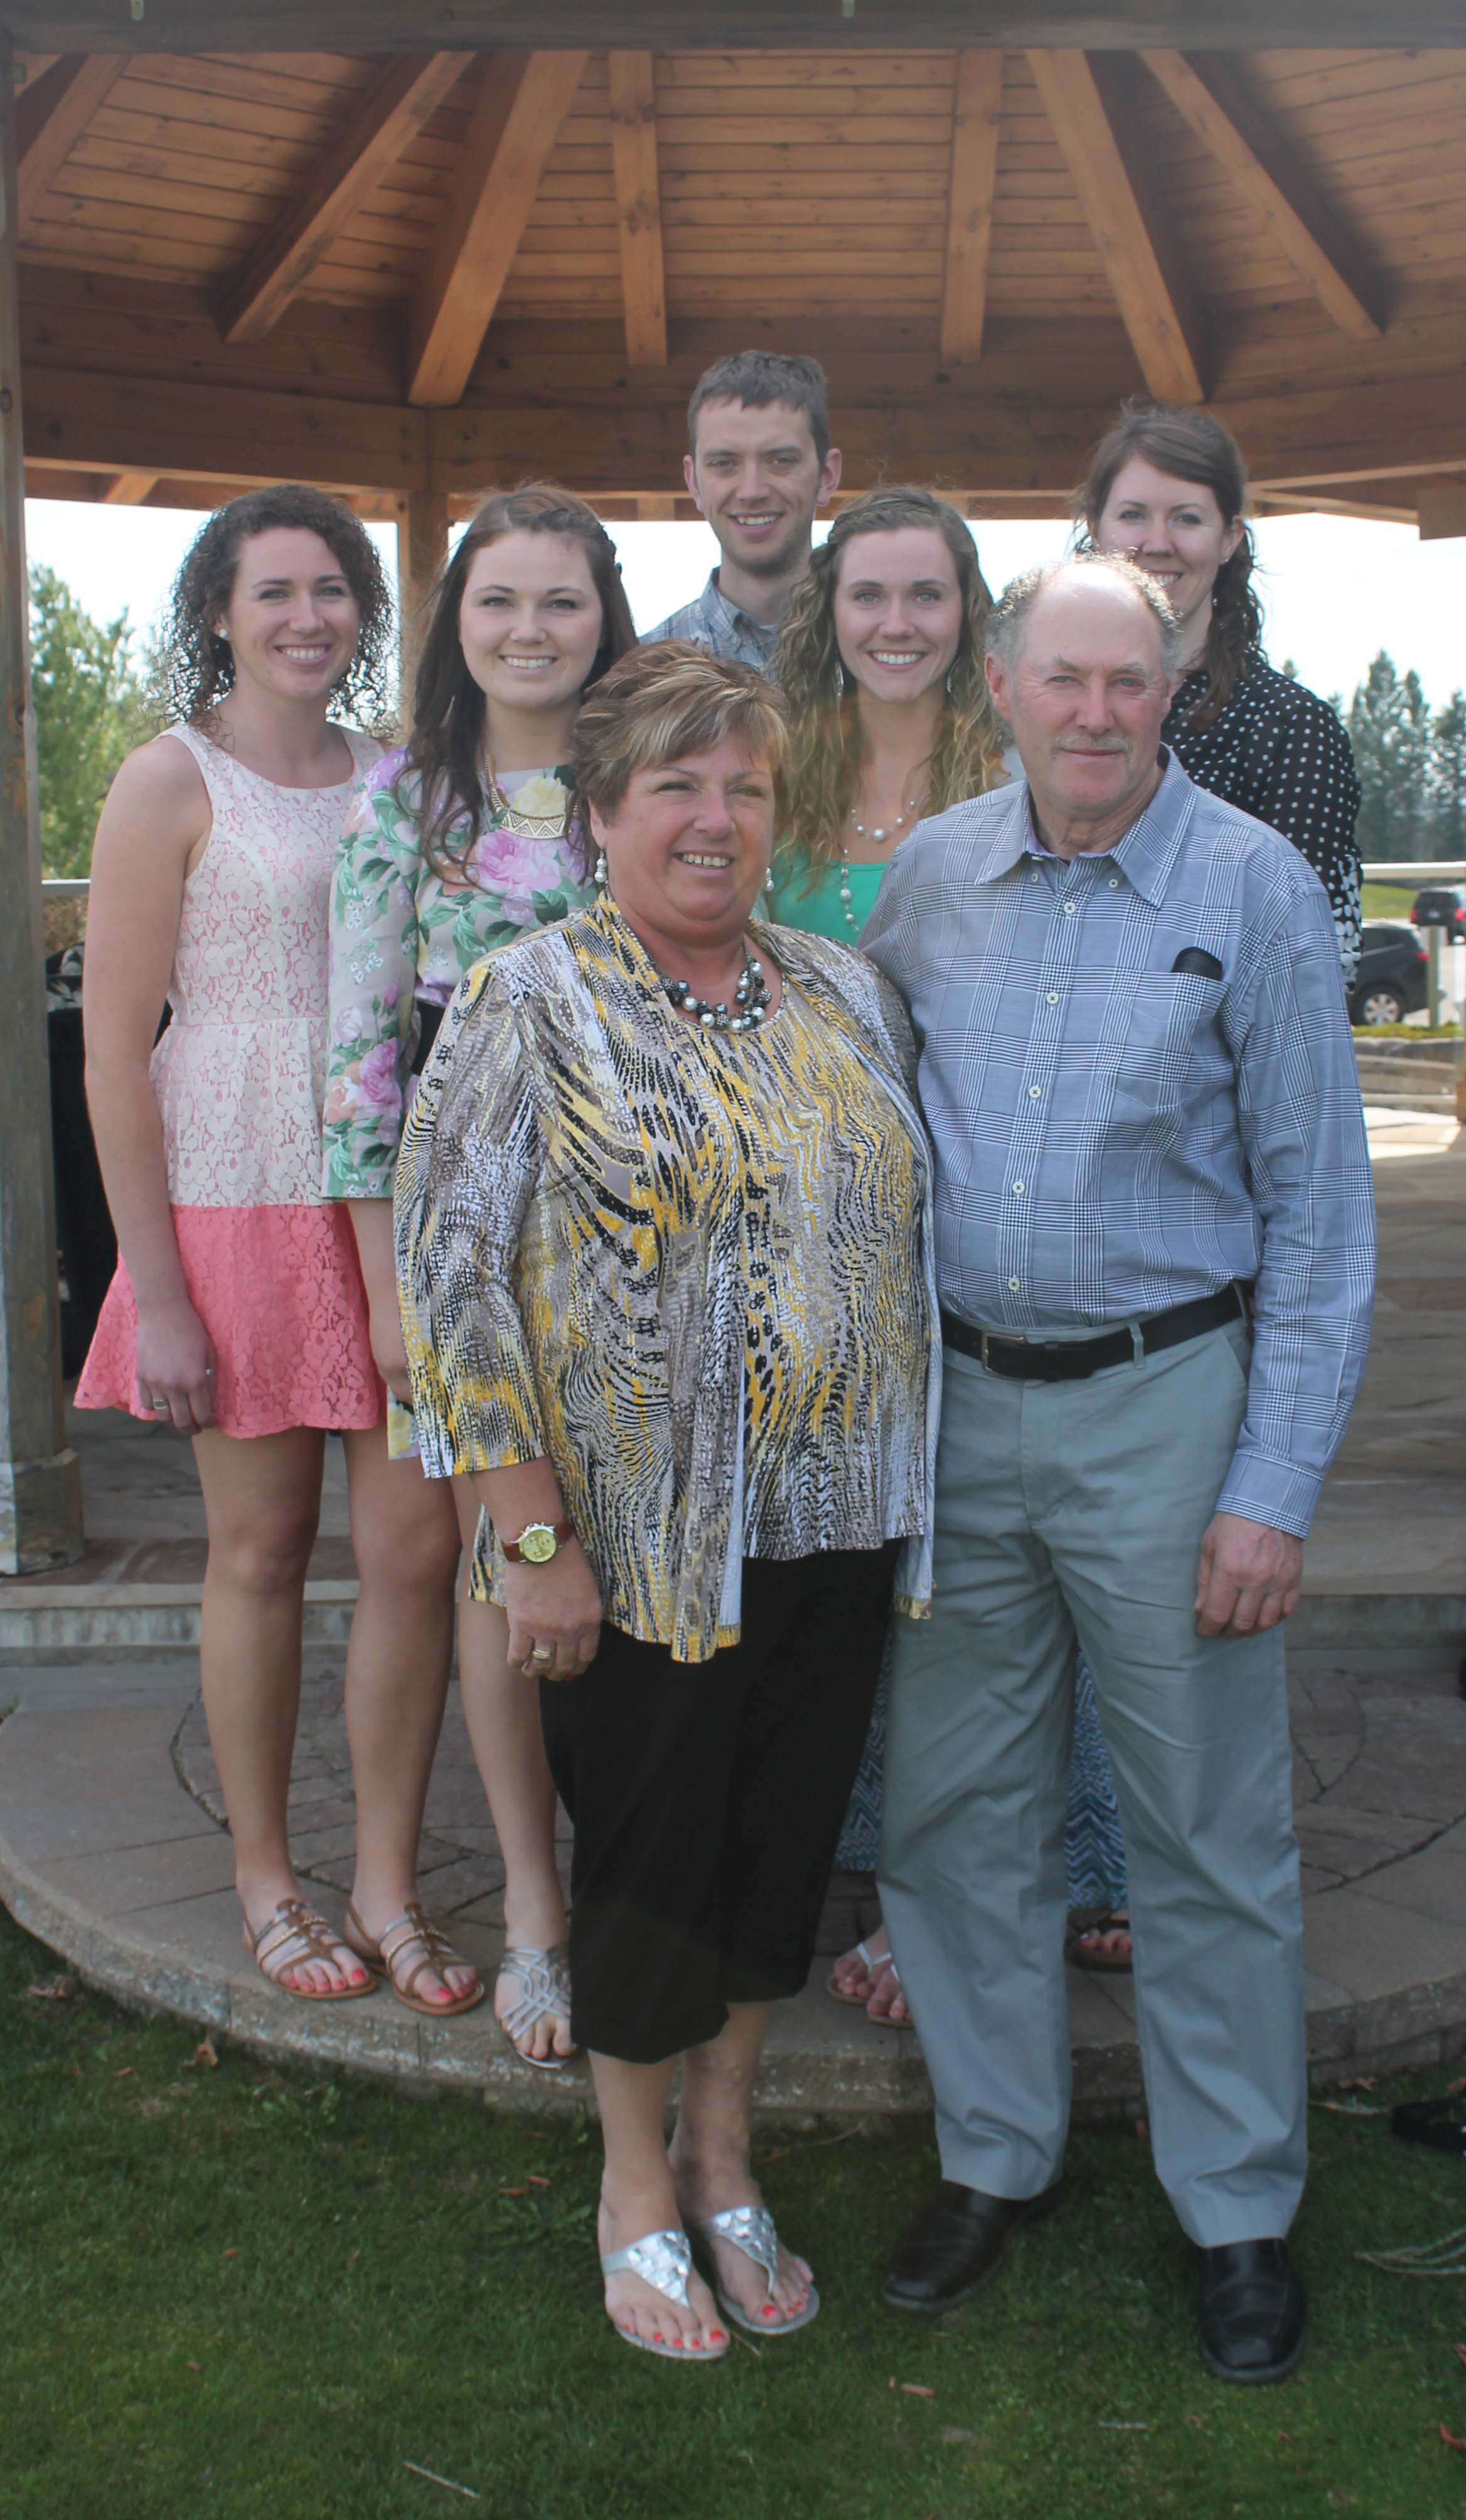 Barb and Jim Buck, their four daughters, and son-in-law:  Front  (L-R): Barb and Jim Buck;  Back  (L-R): Amanda Buck, Ashley Buck, Tim Haan, Jamie Buck, Julia Haan